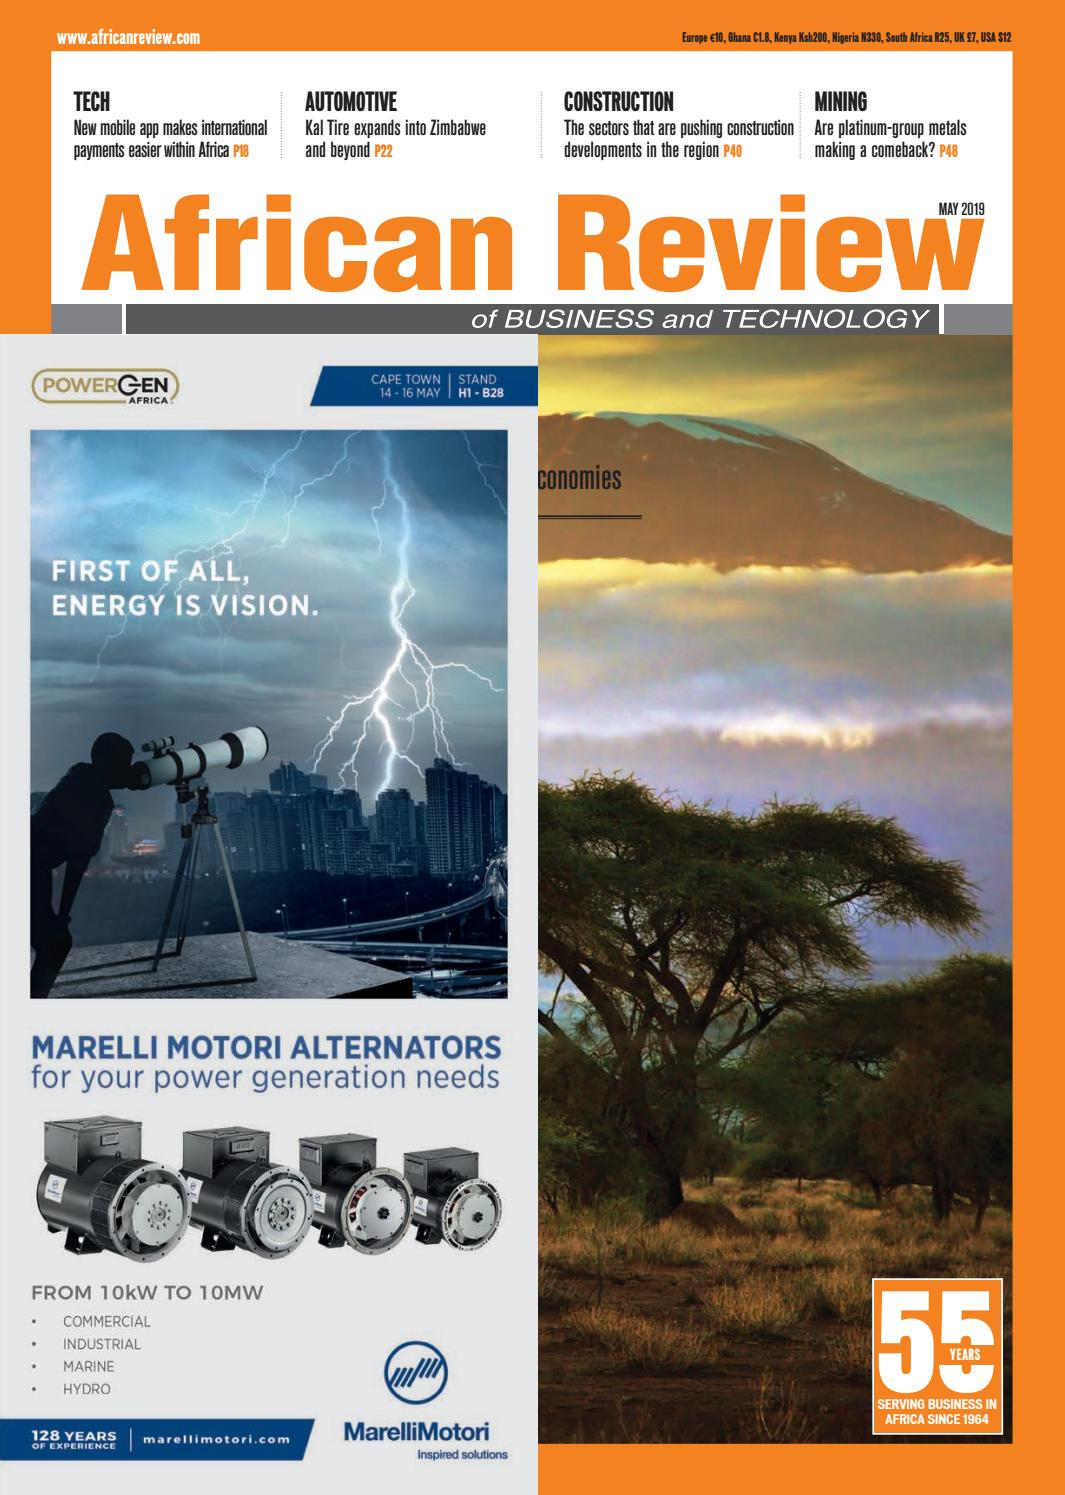 African Review May 2019 by Alain Charles Publishing - issuu